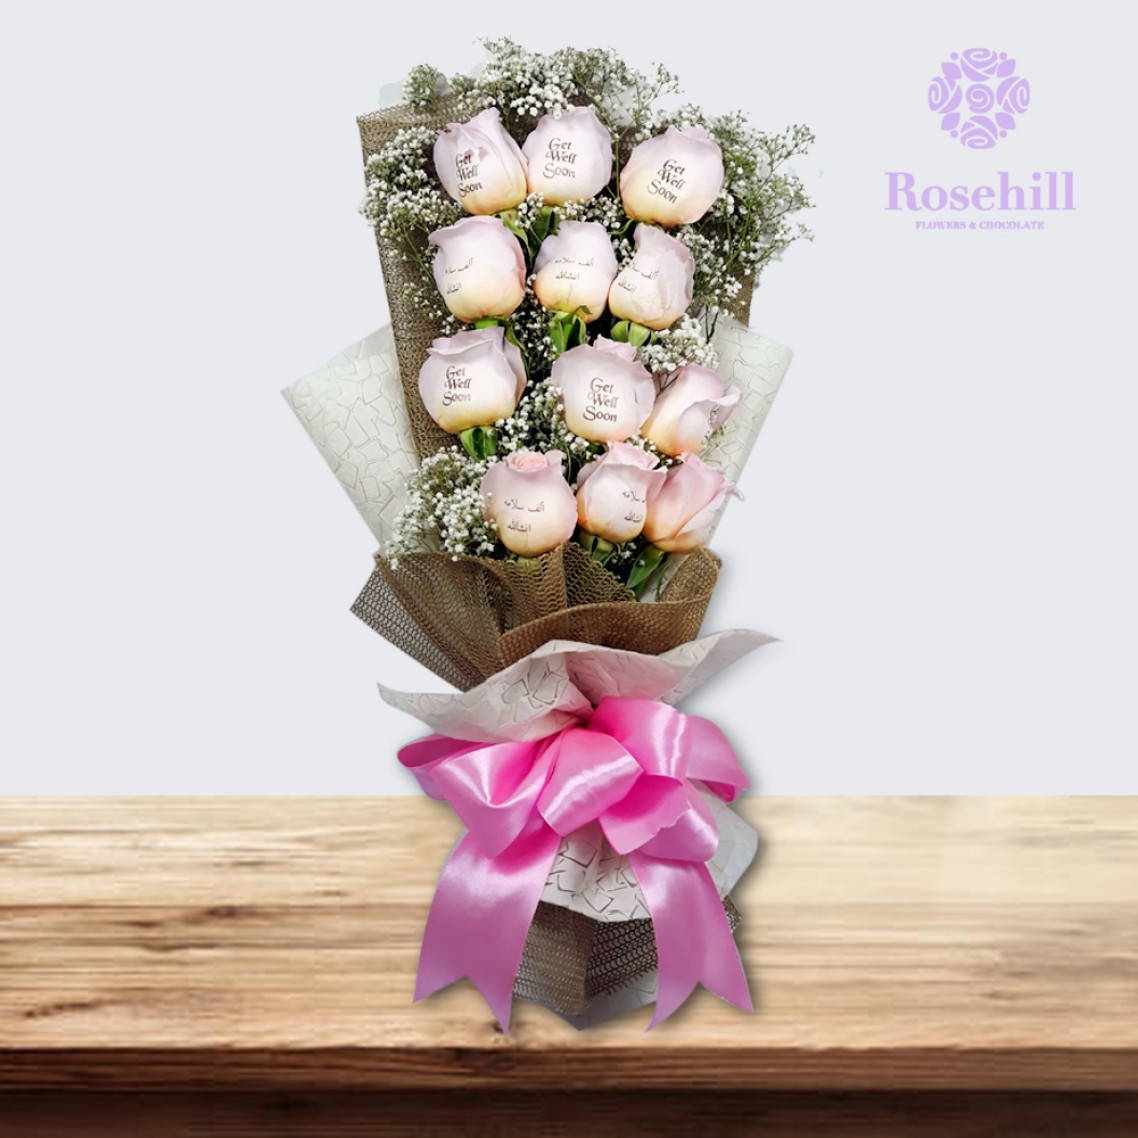 1524671127-h-250-_Rosehill's Get Well Soon Bouquet with Babys Breath- Pink.jpg